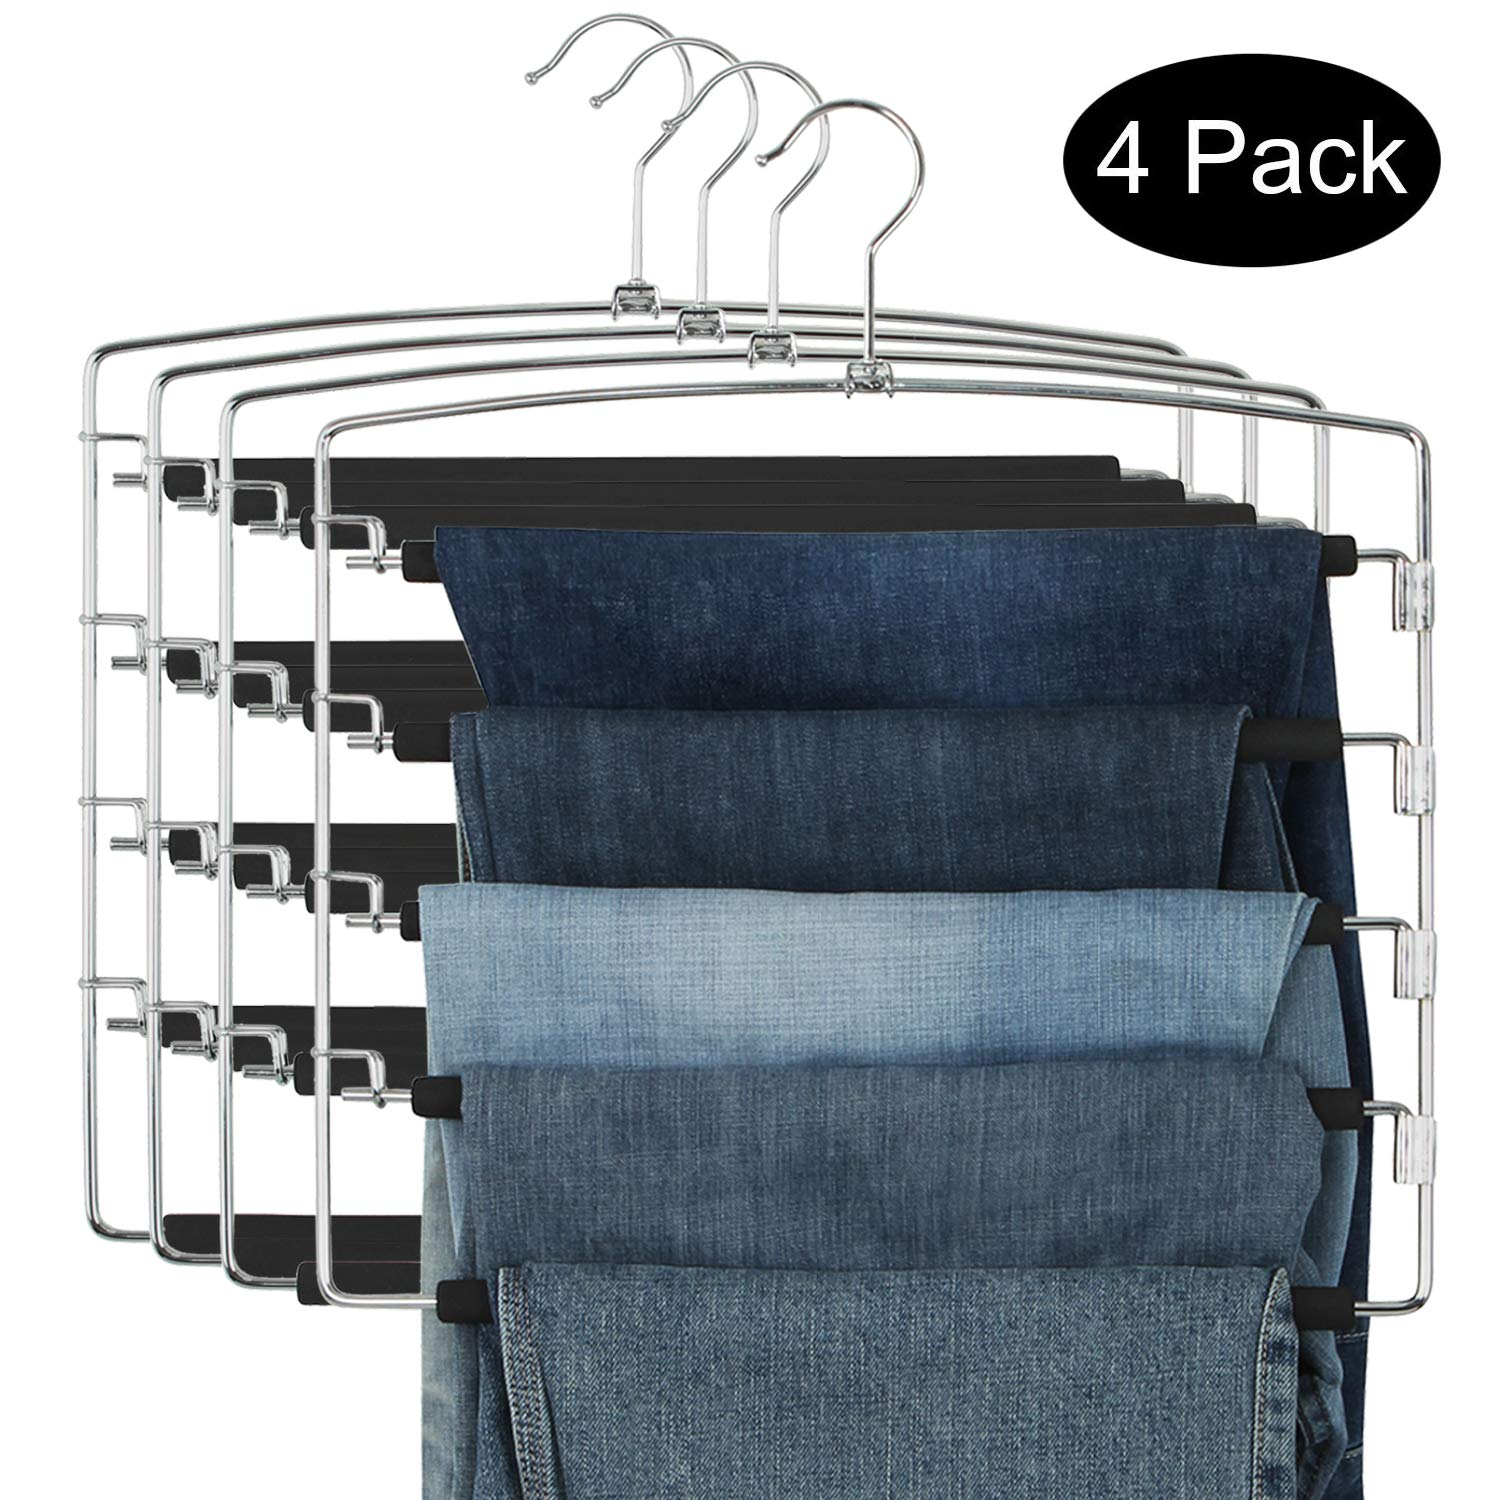 DOIOWN Pants Hangers Slacks Hangers Space Saving Non Slip Stainless Steel Clothes Hangers Closet Organizer for Pants Jeans Trousers Scarf (4-Pack(5 Layer-Upgrade Version)) by DOIOWN